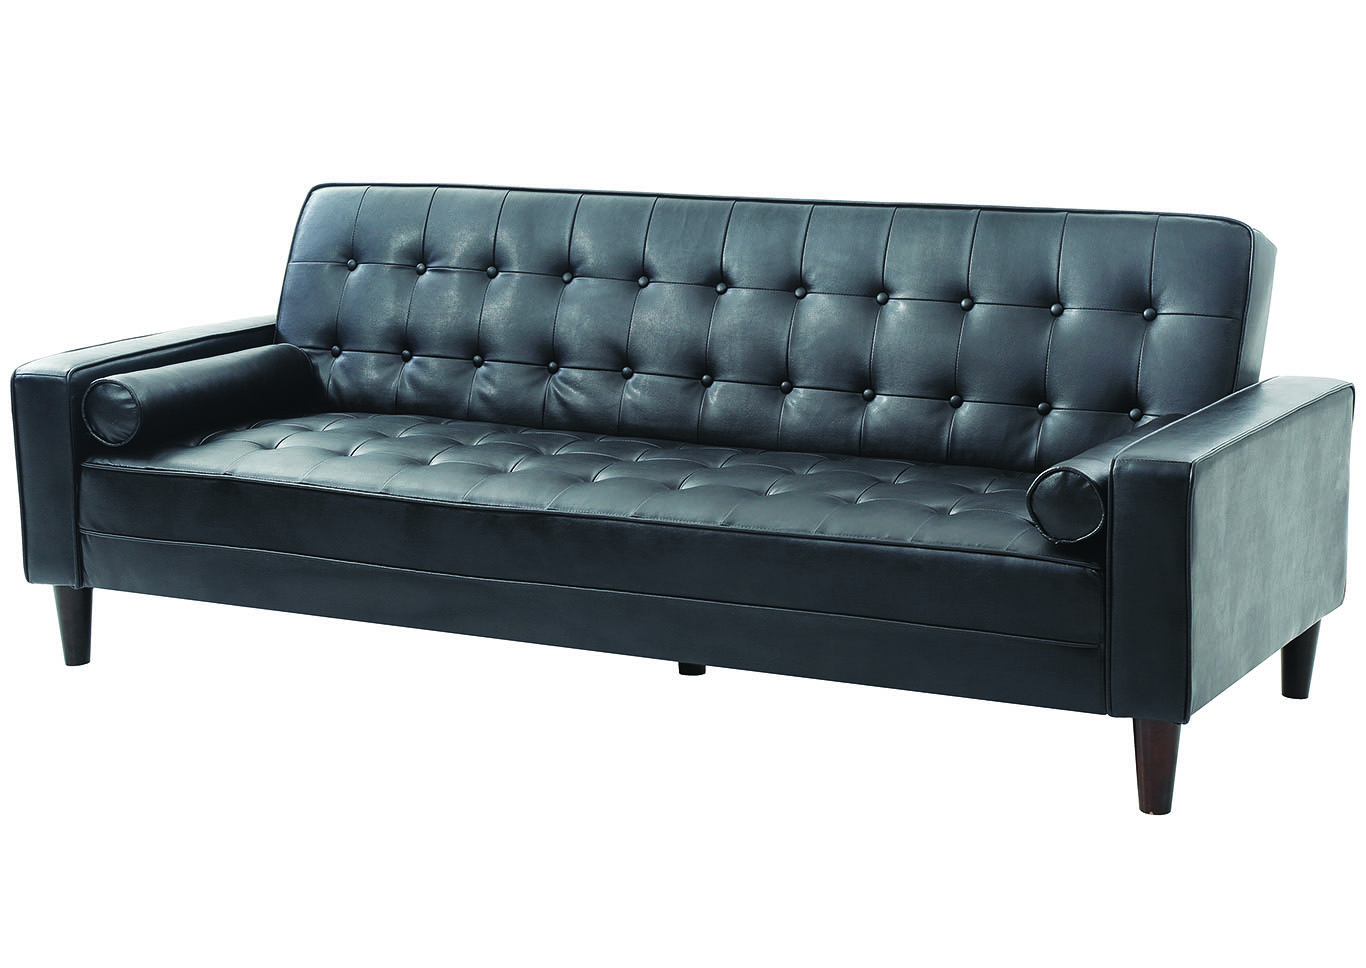 Black PU Sofa Bed,Glory Furniture